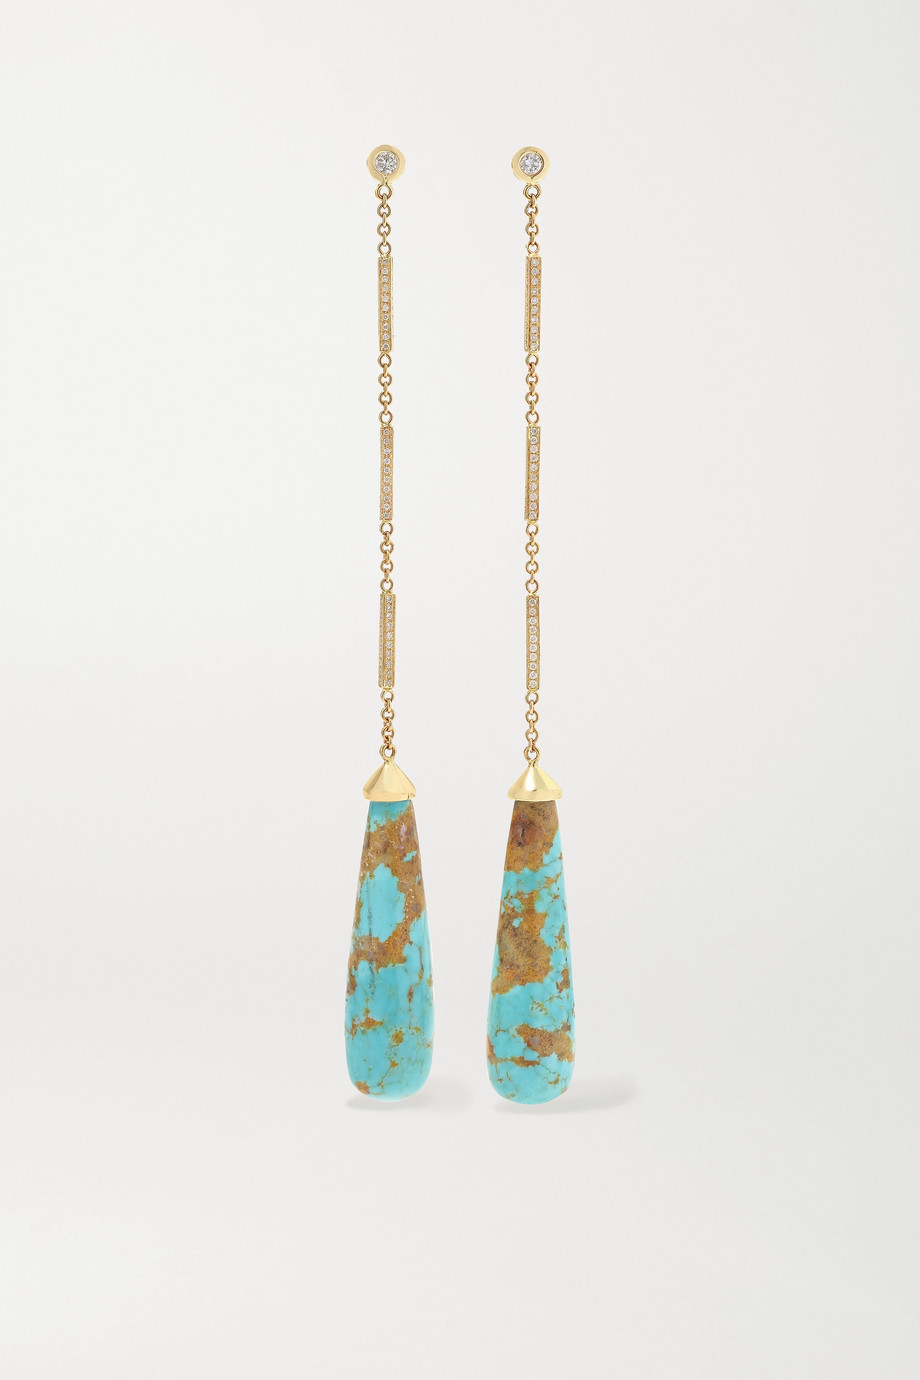 Jacquie Aiche 14-karat gold, turquoise and diamond earrings